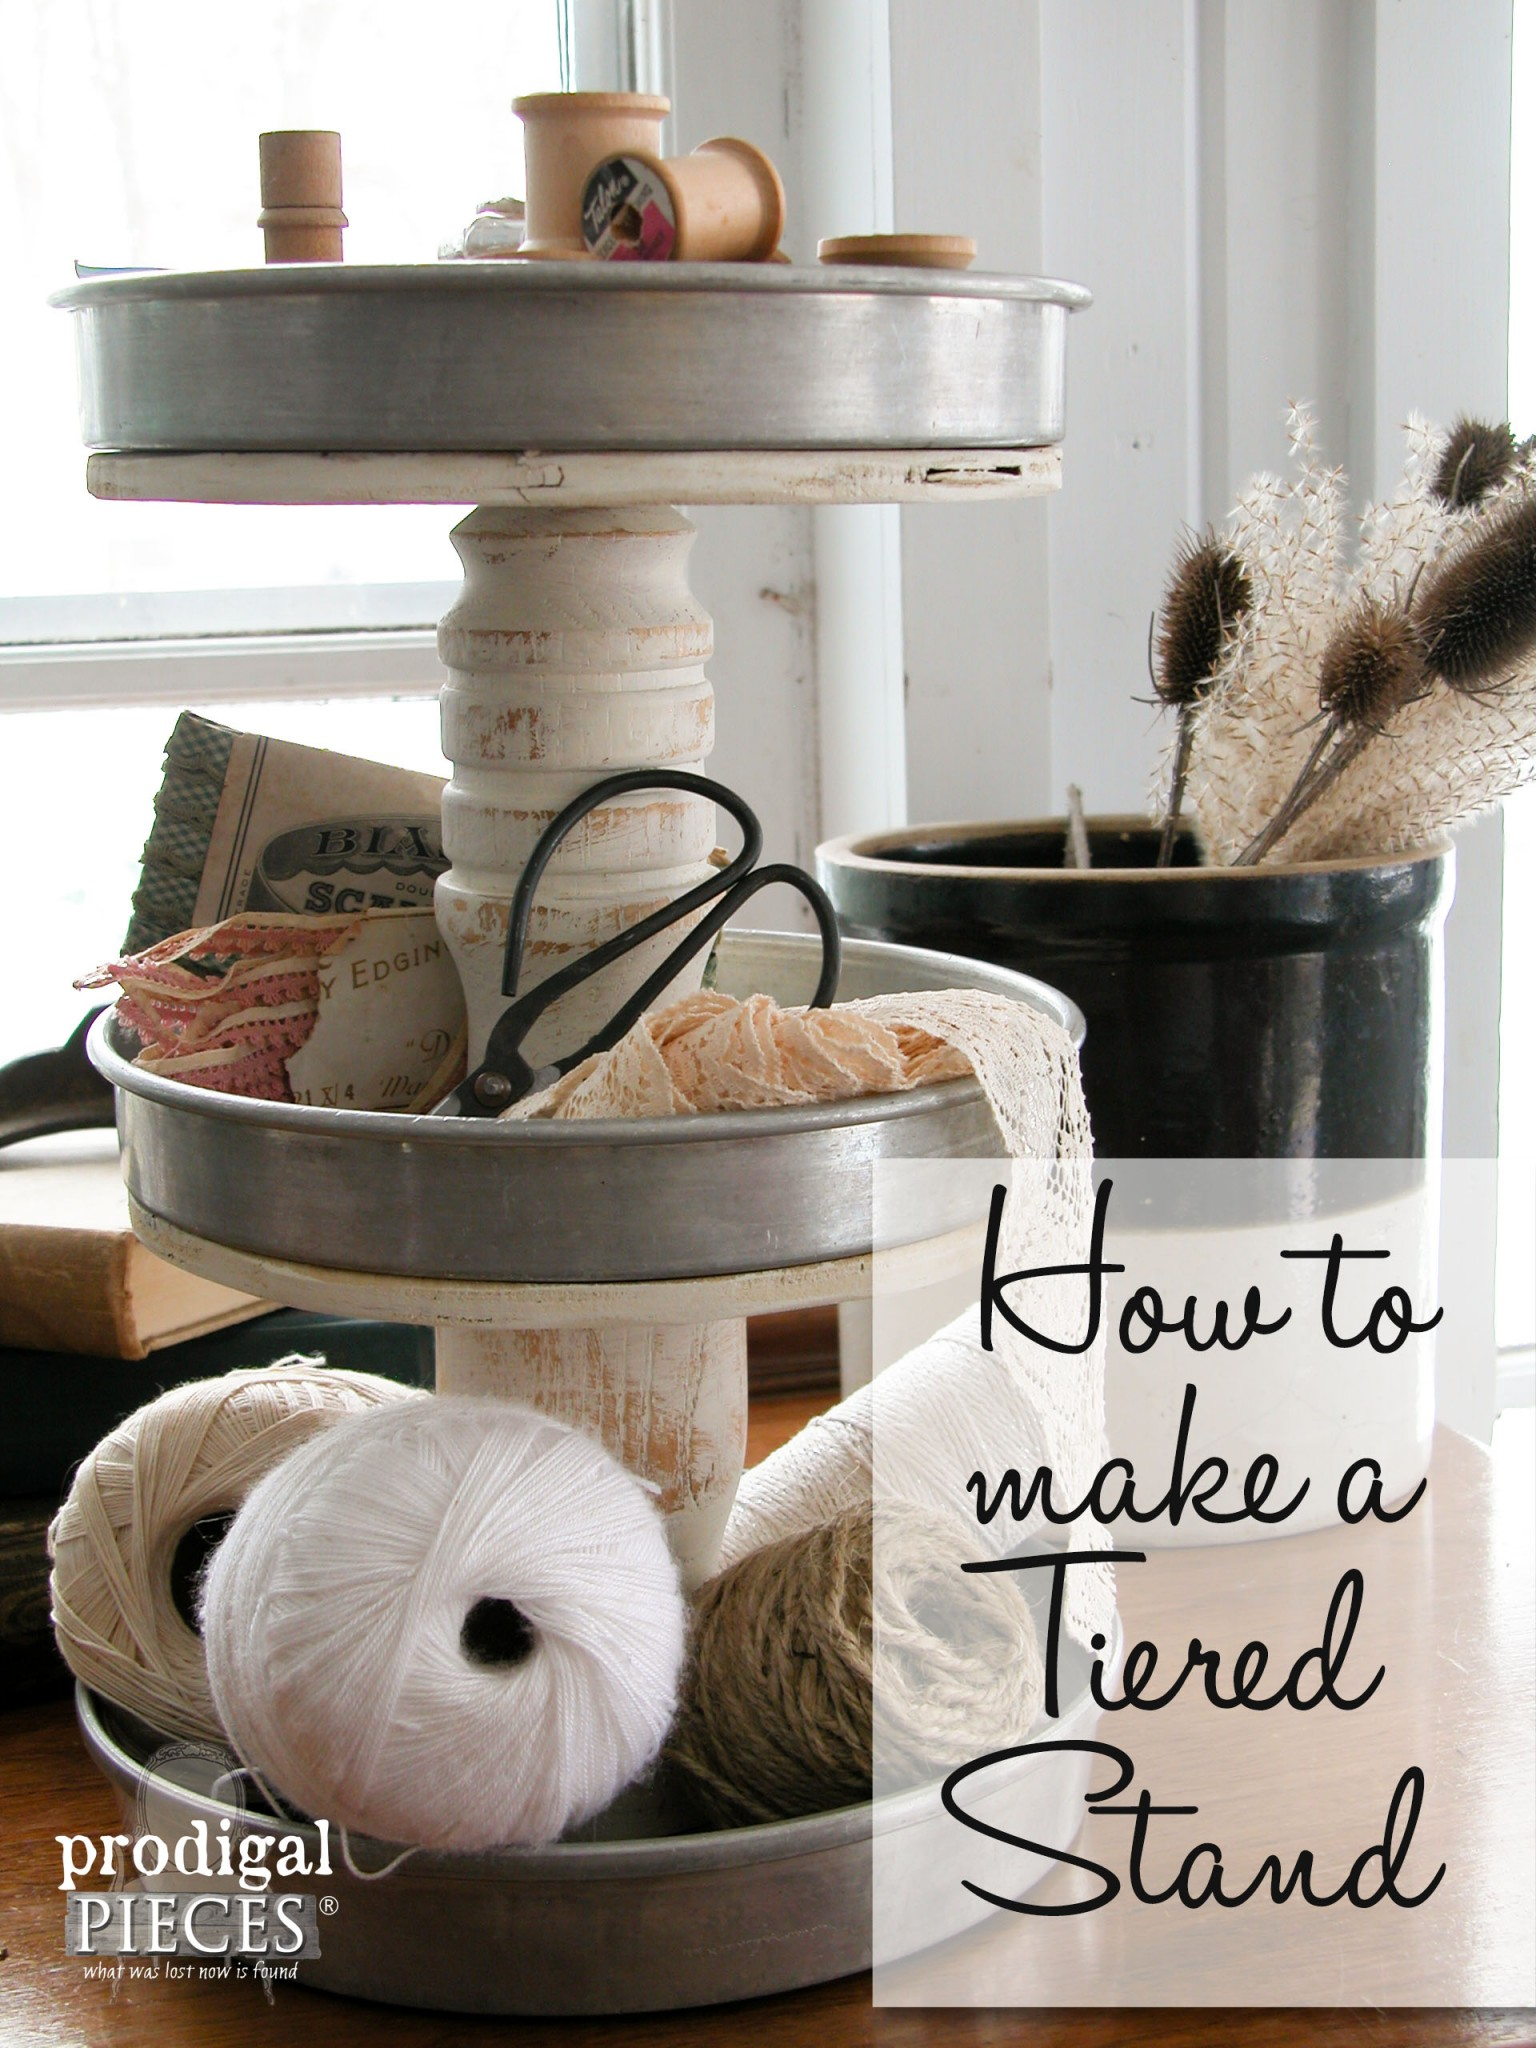 Diy Tiered Stand From Repurposed Junk Prodigal Pieces